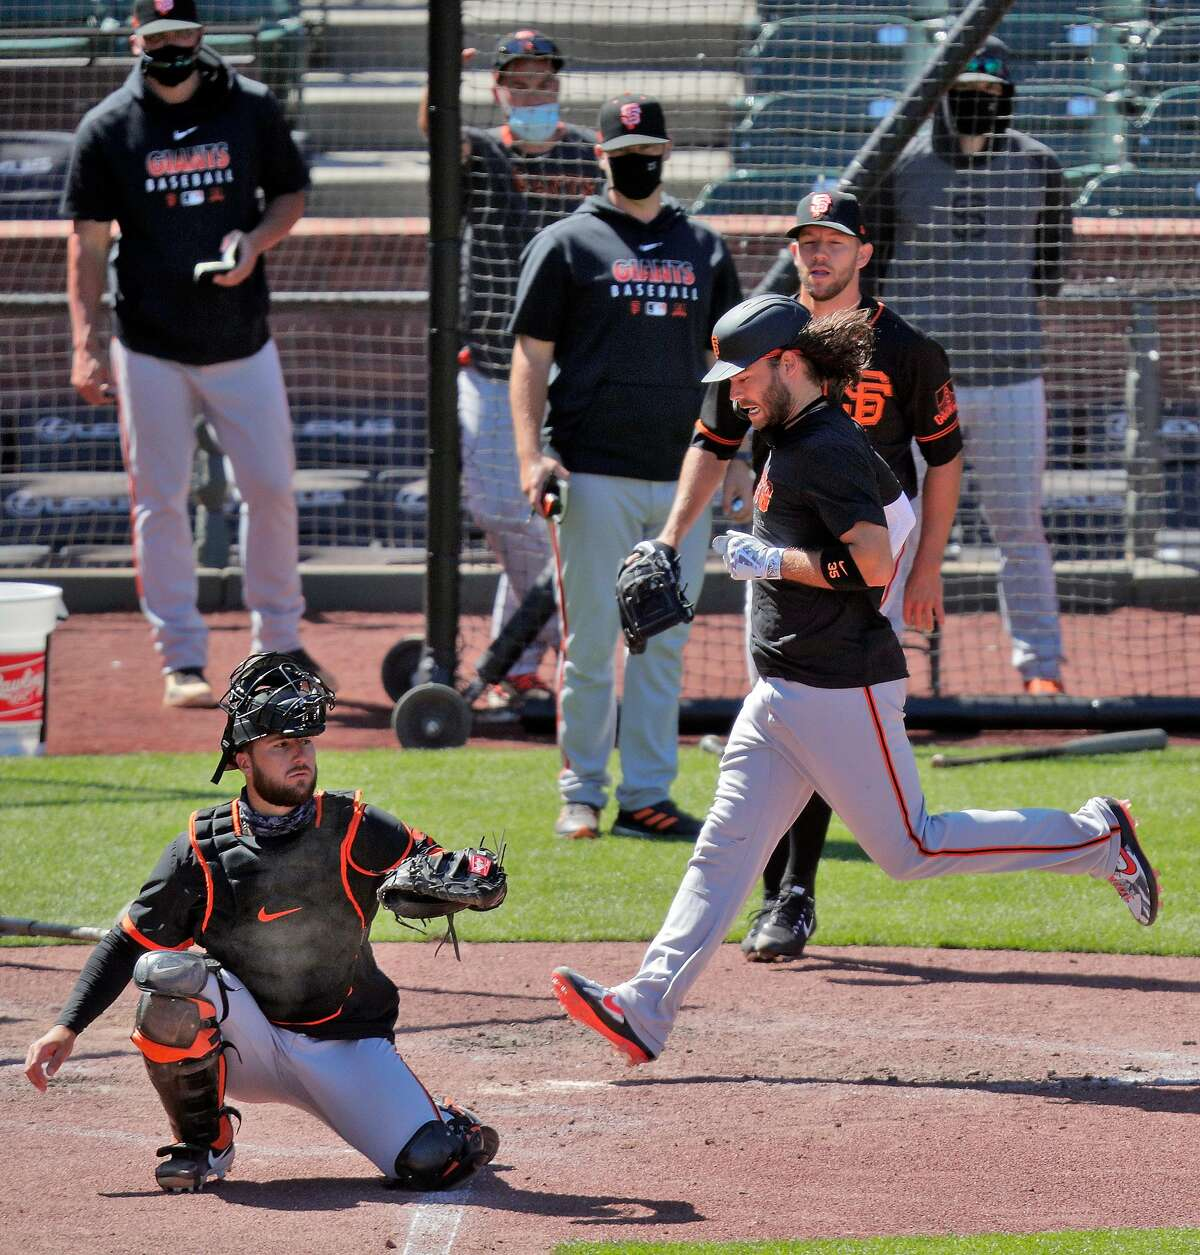 Brandon Crawford (35) scores as the San Francisco Giants worked out and played a simulated game at Oracle Park in San Francisco, Calif., on Wednesday, July 8, 2020.